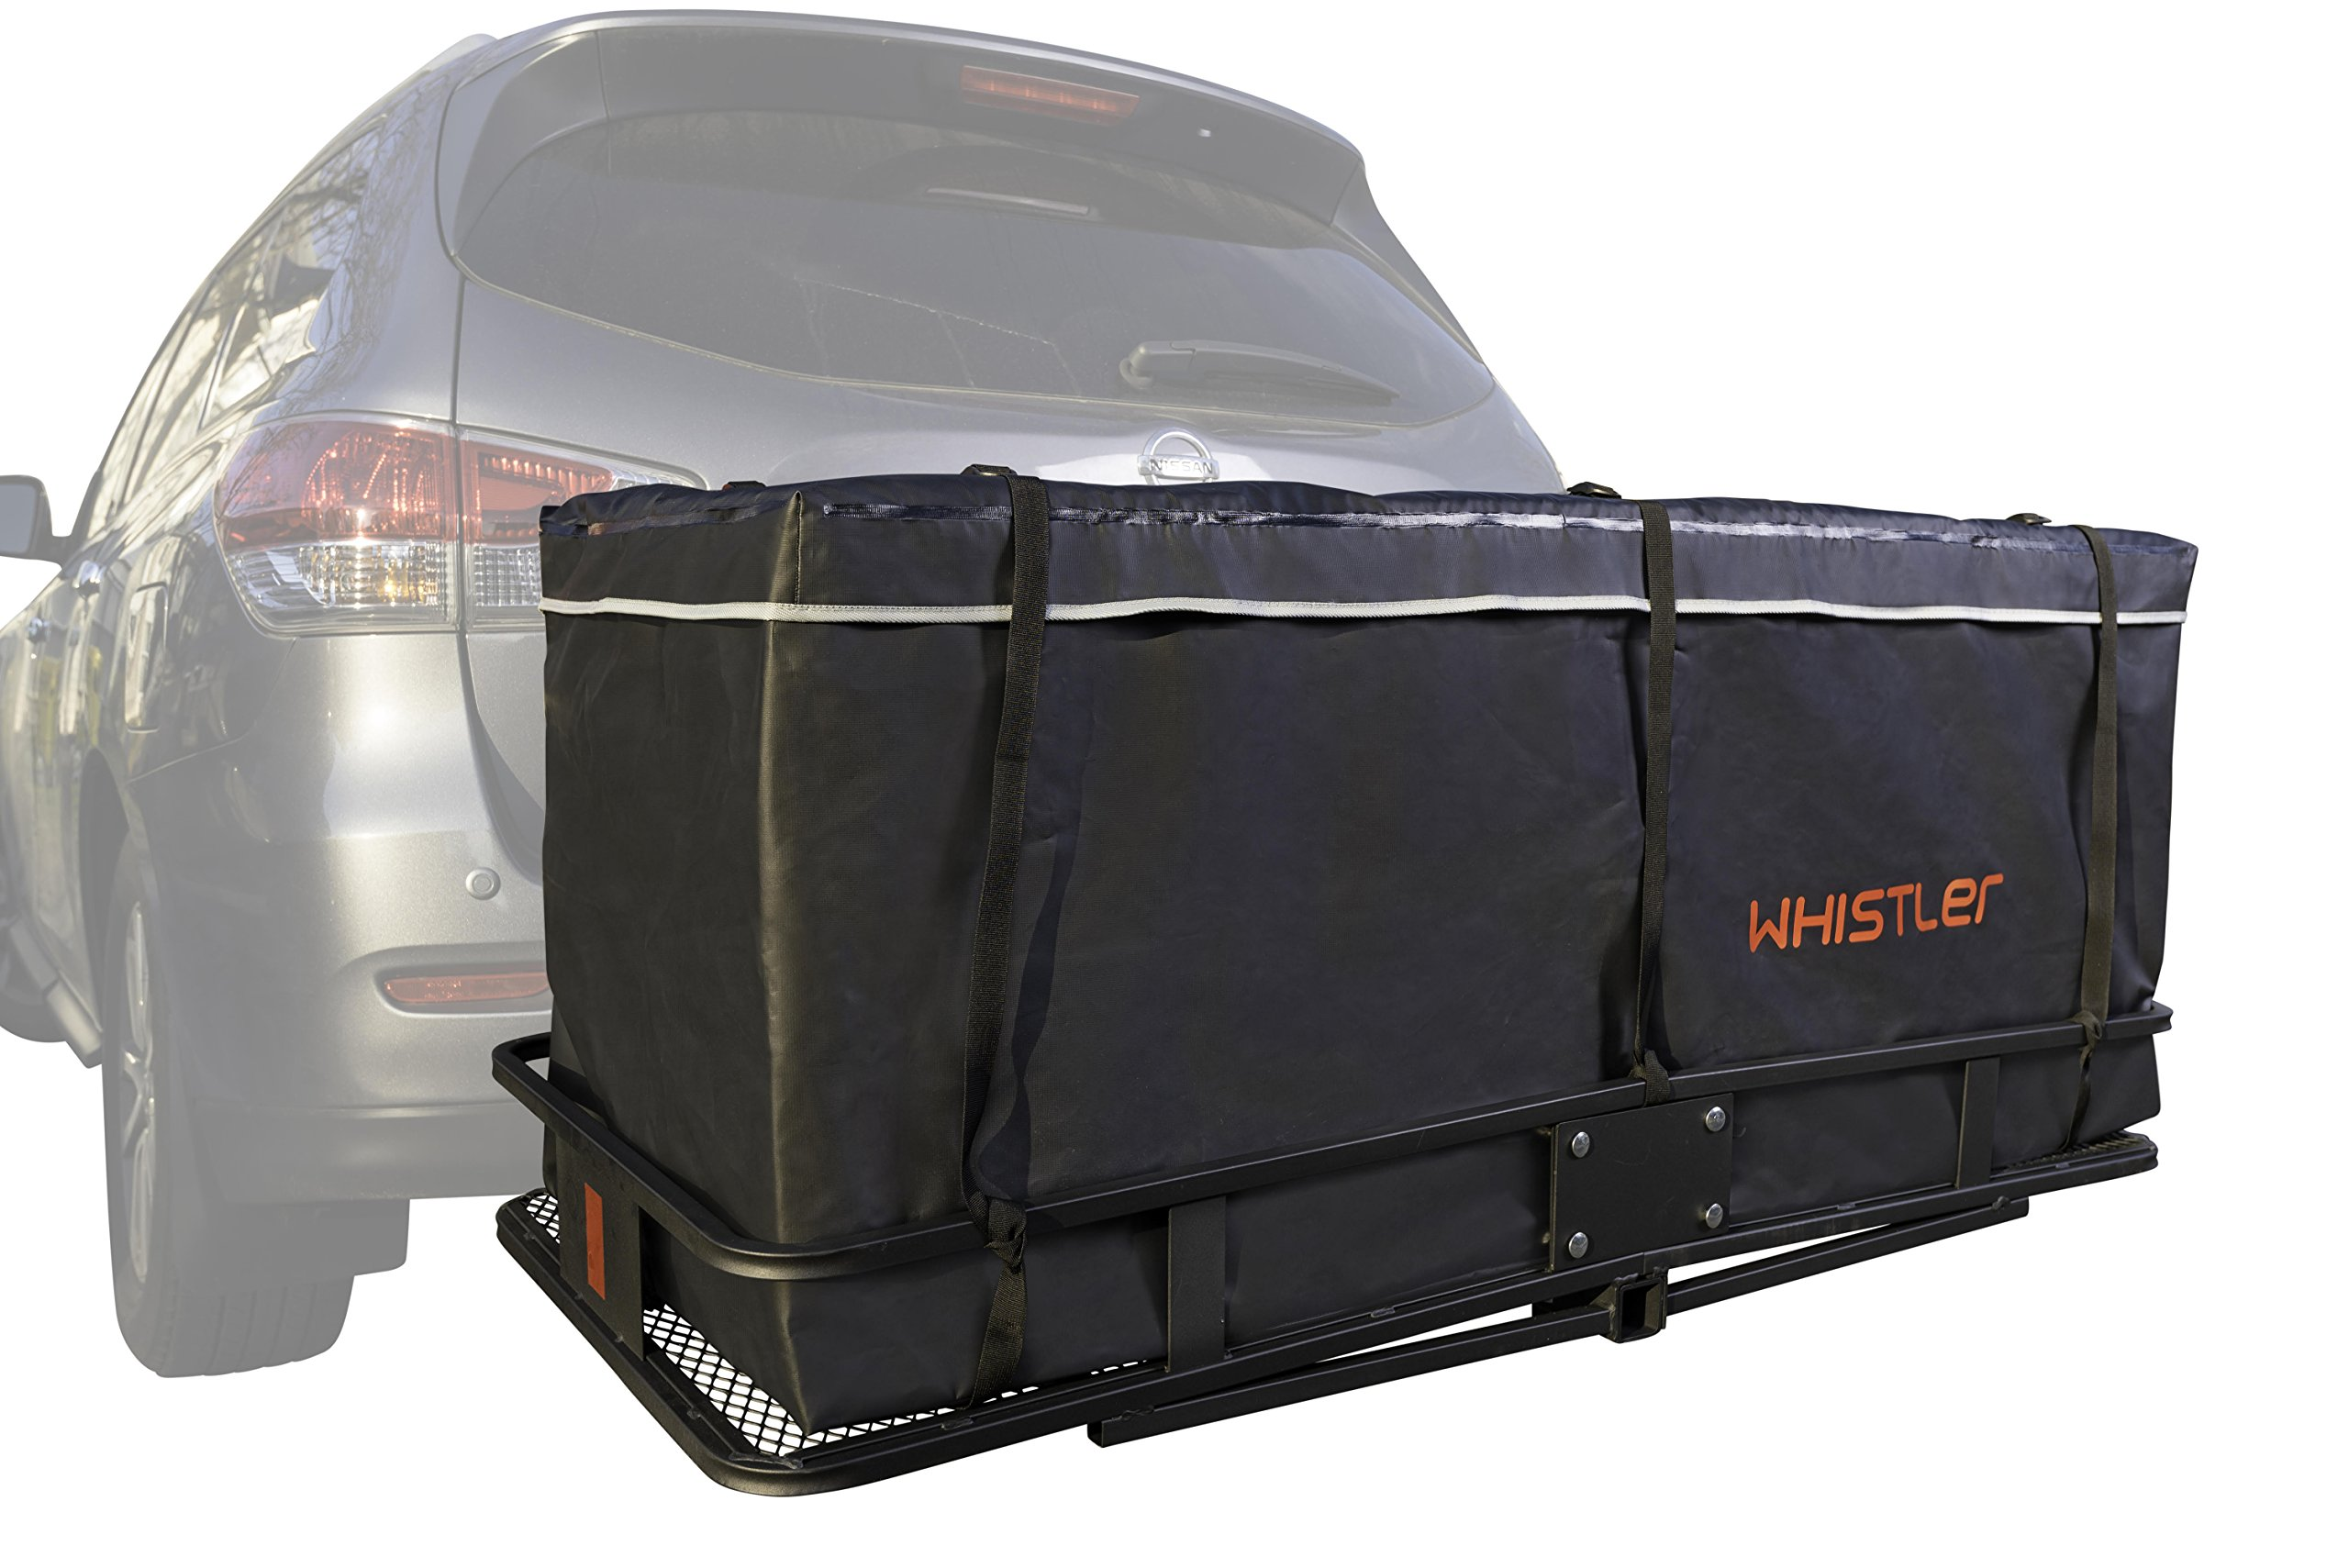 Hitch bag - 100% Waterproof Large Hitch Tray Cargo carrier bag 59'' x 24'' x 24'' (20 Cu Ft) + Storage Bag